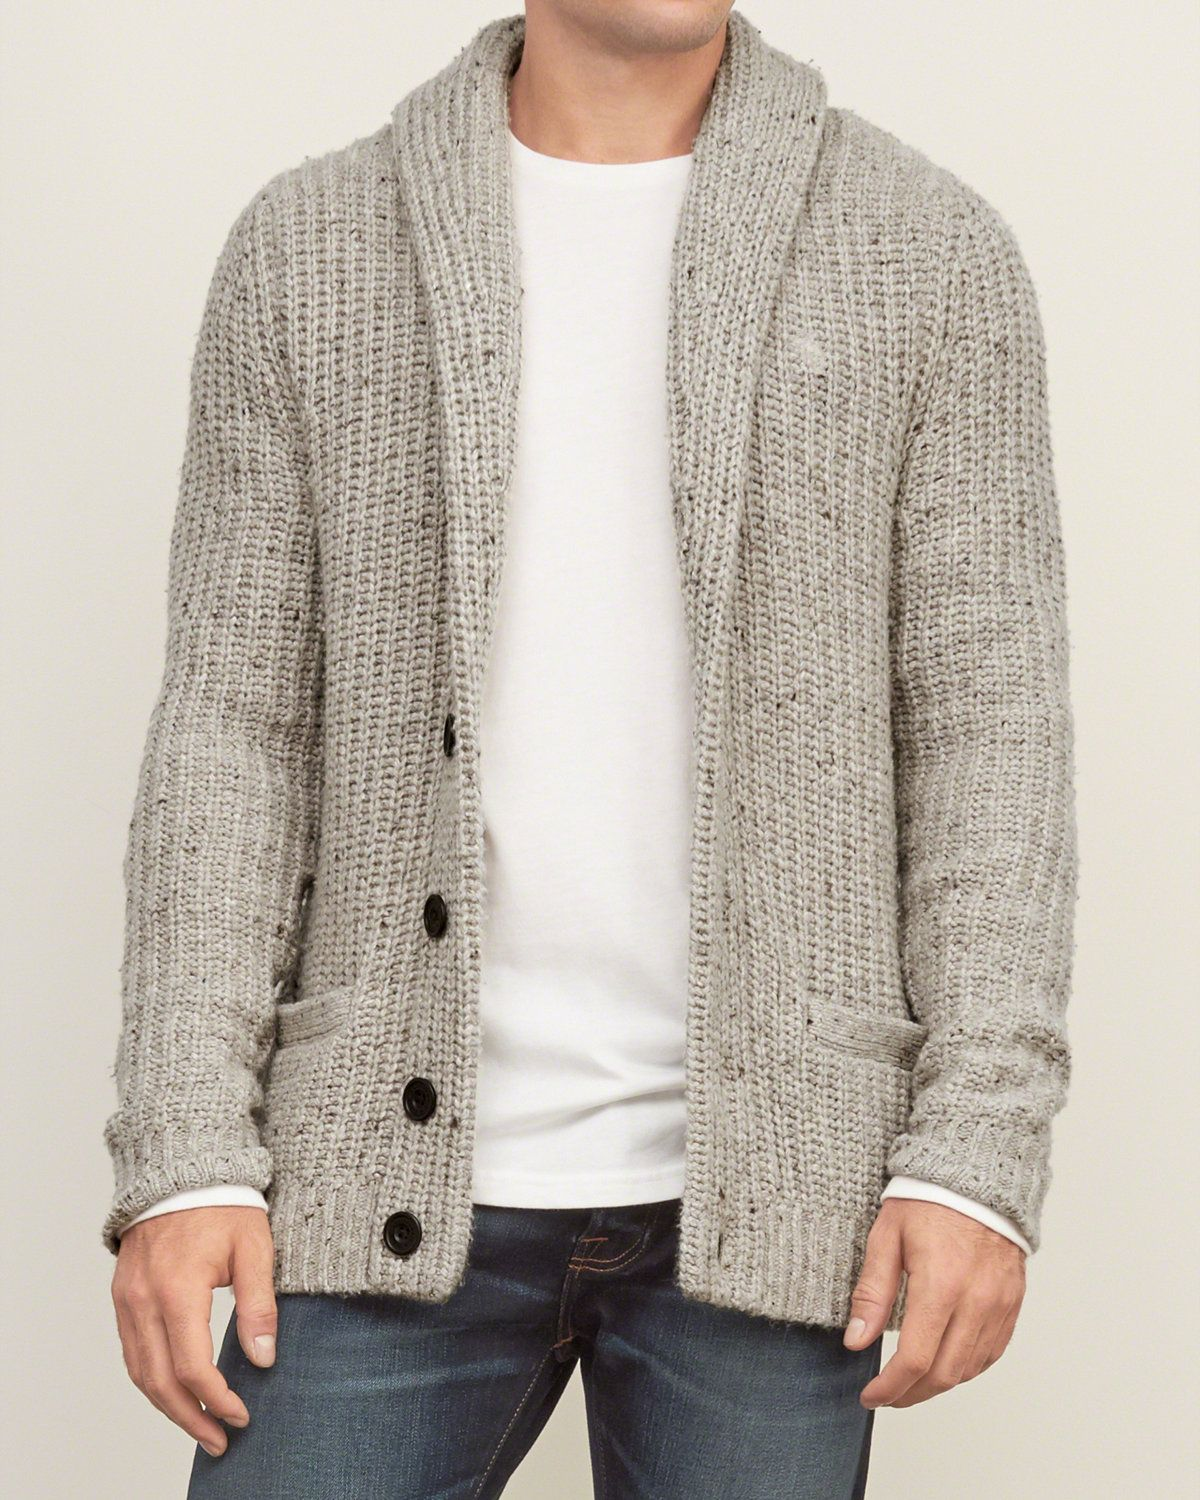 Mens Shawl Cardigan Sweater | Mens Sweaters | Abercrombie.co.uk